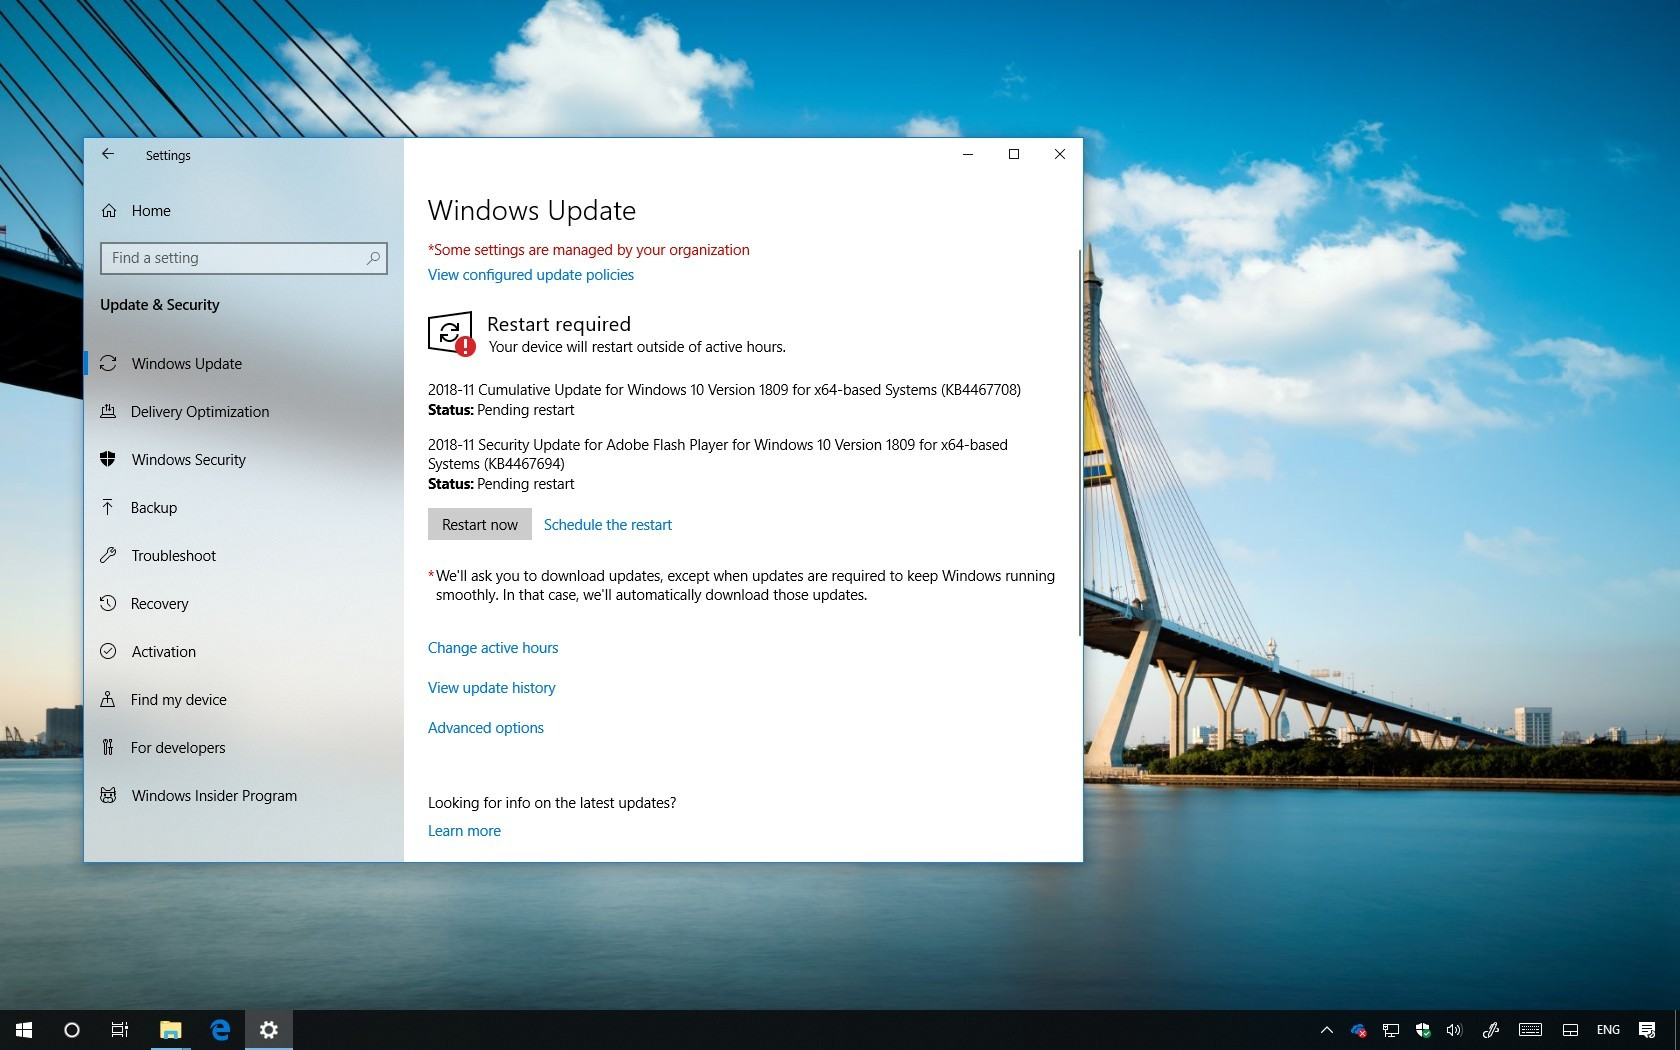 KB4467708 update for Windows 10